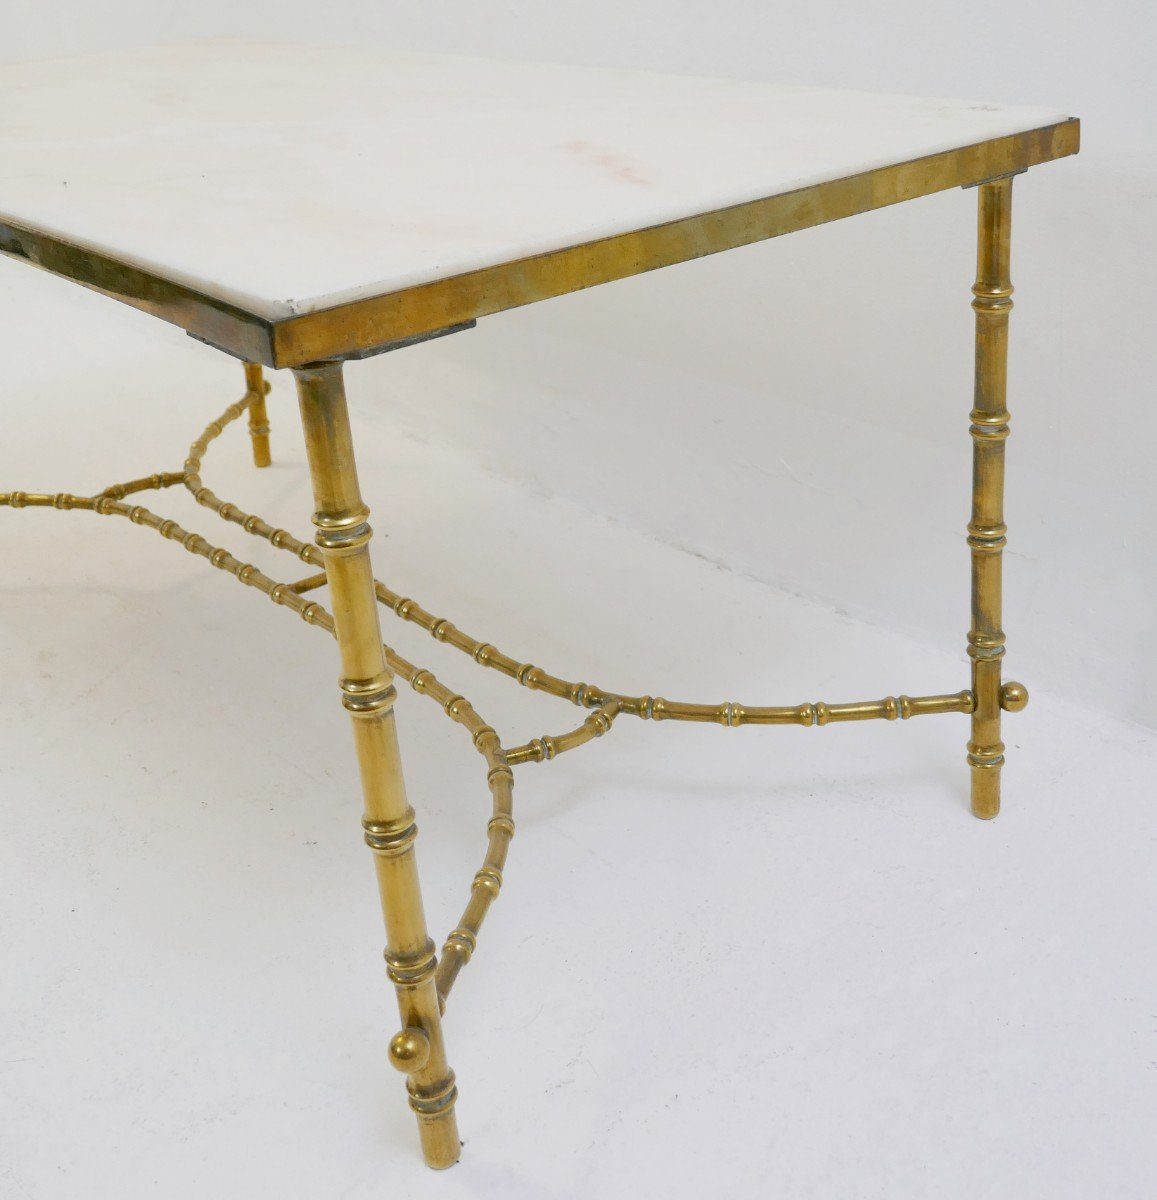 Brass Faux Bamboo Coffee Table: Vintage Brass Faux Bamboo Coffee Table, 1970s For Sale At